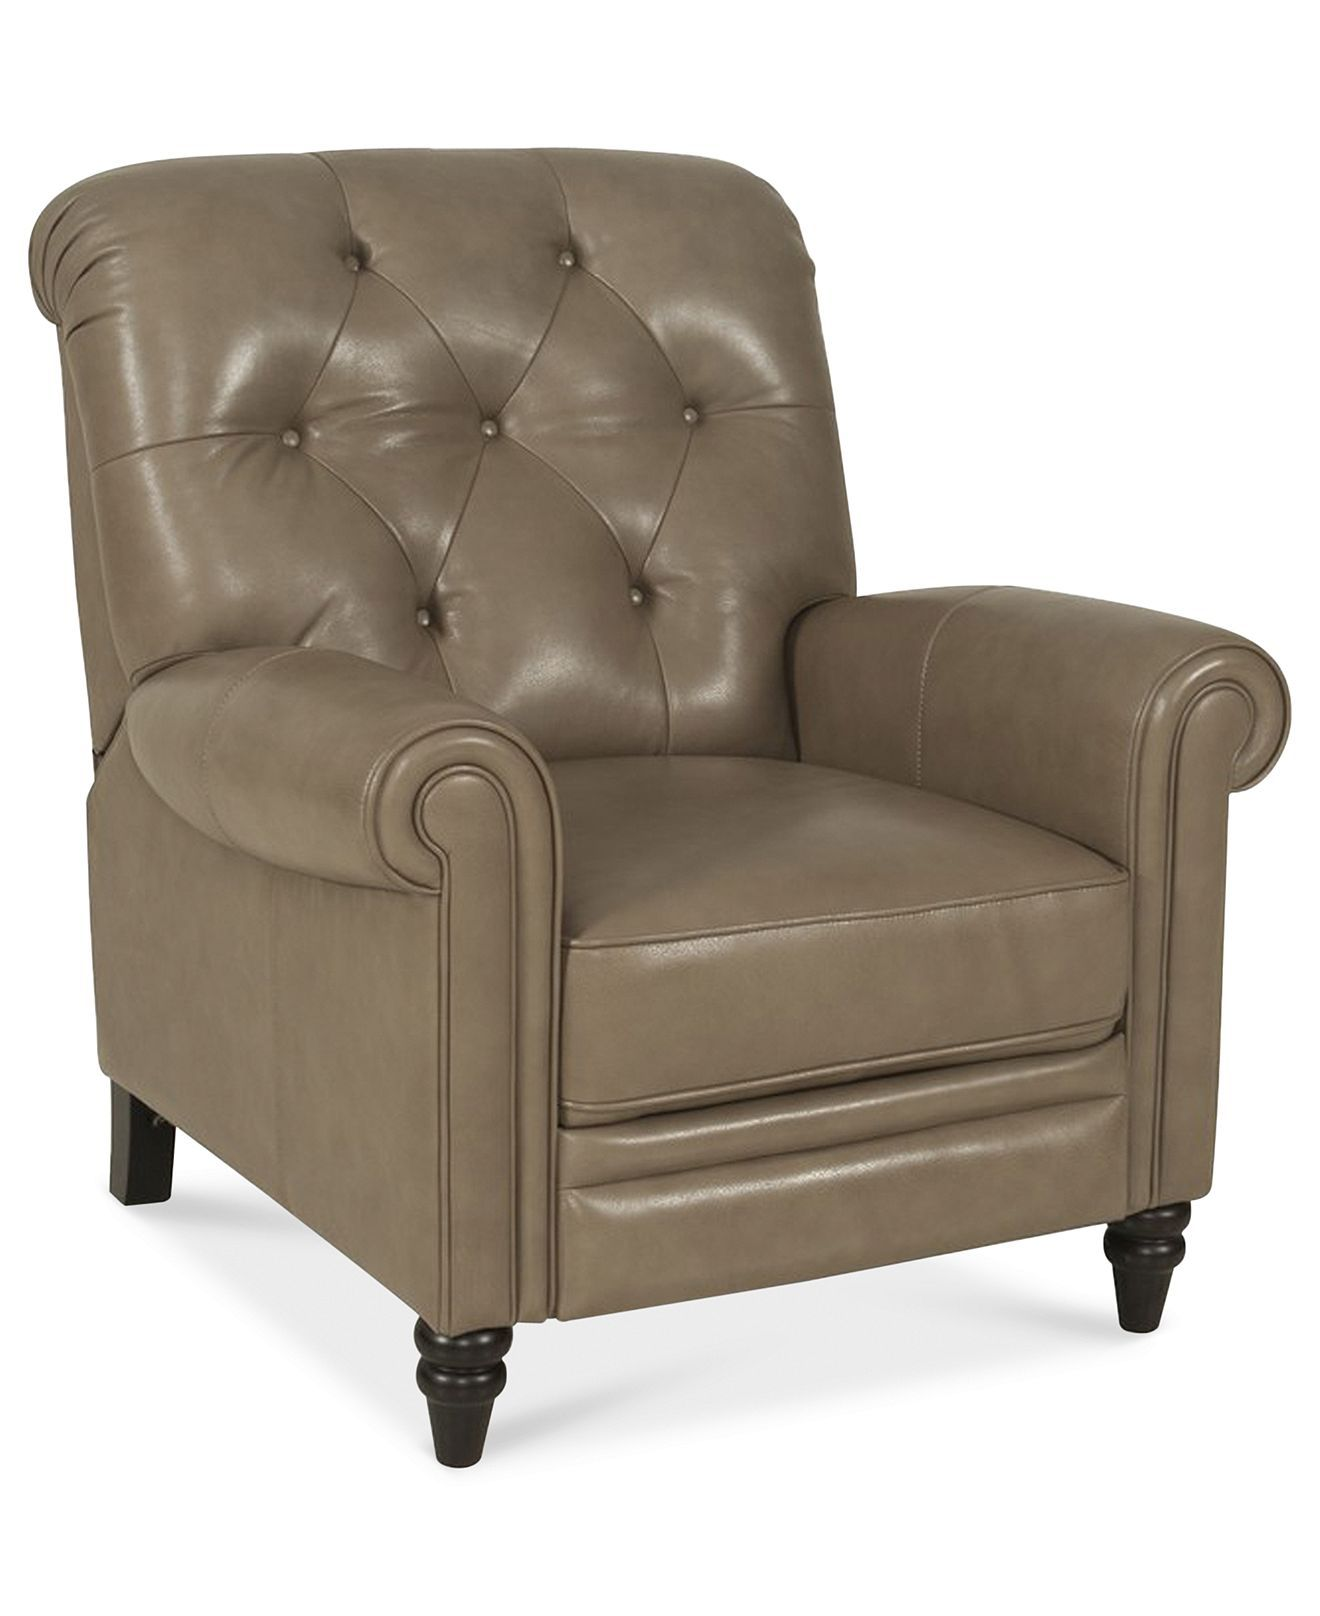 Martha Stewart Chair Covers Slipcovers For Dining Chairs With Arms Bradyn Leather Pushback Recliner Created Macy 39s